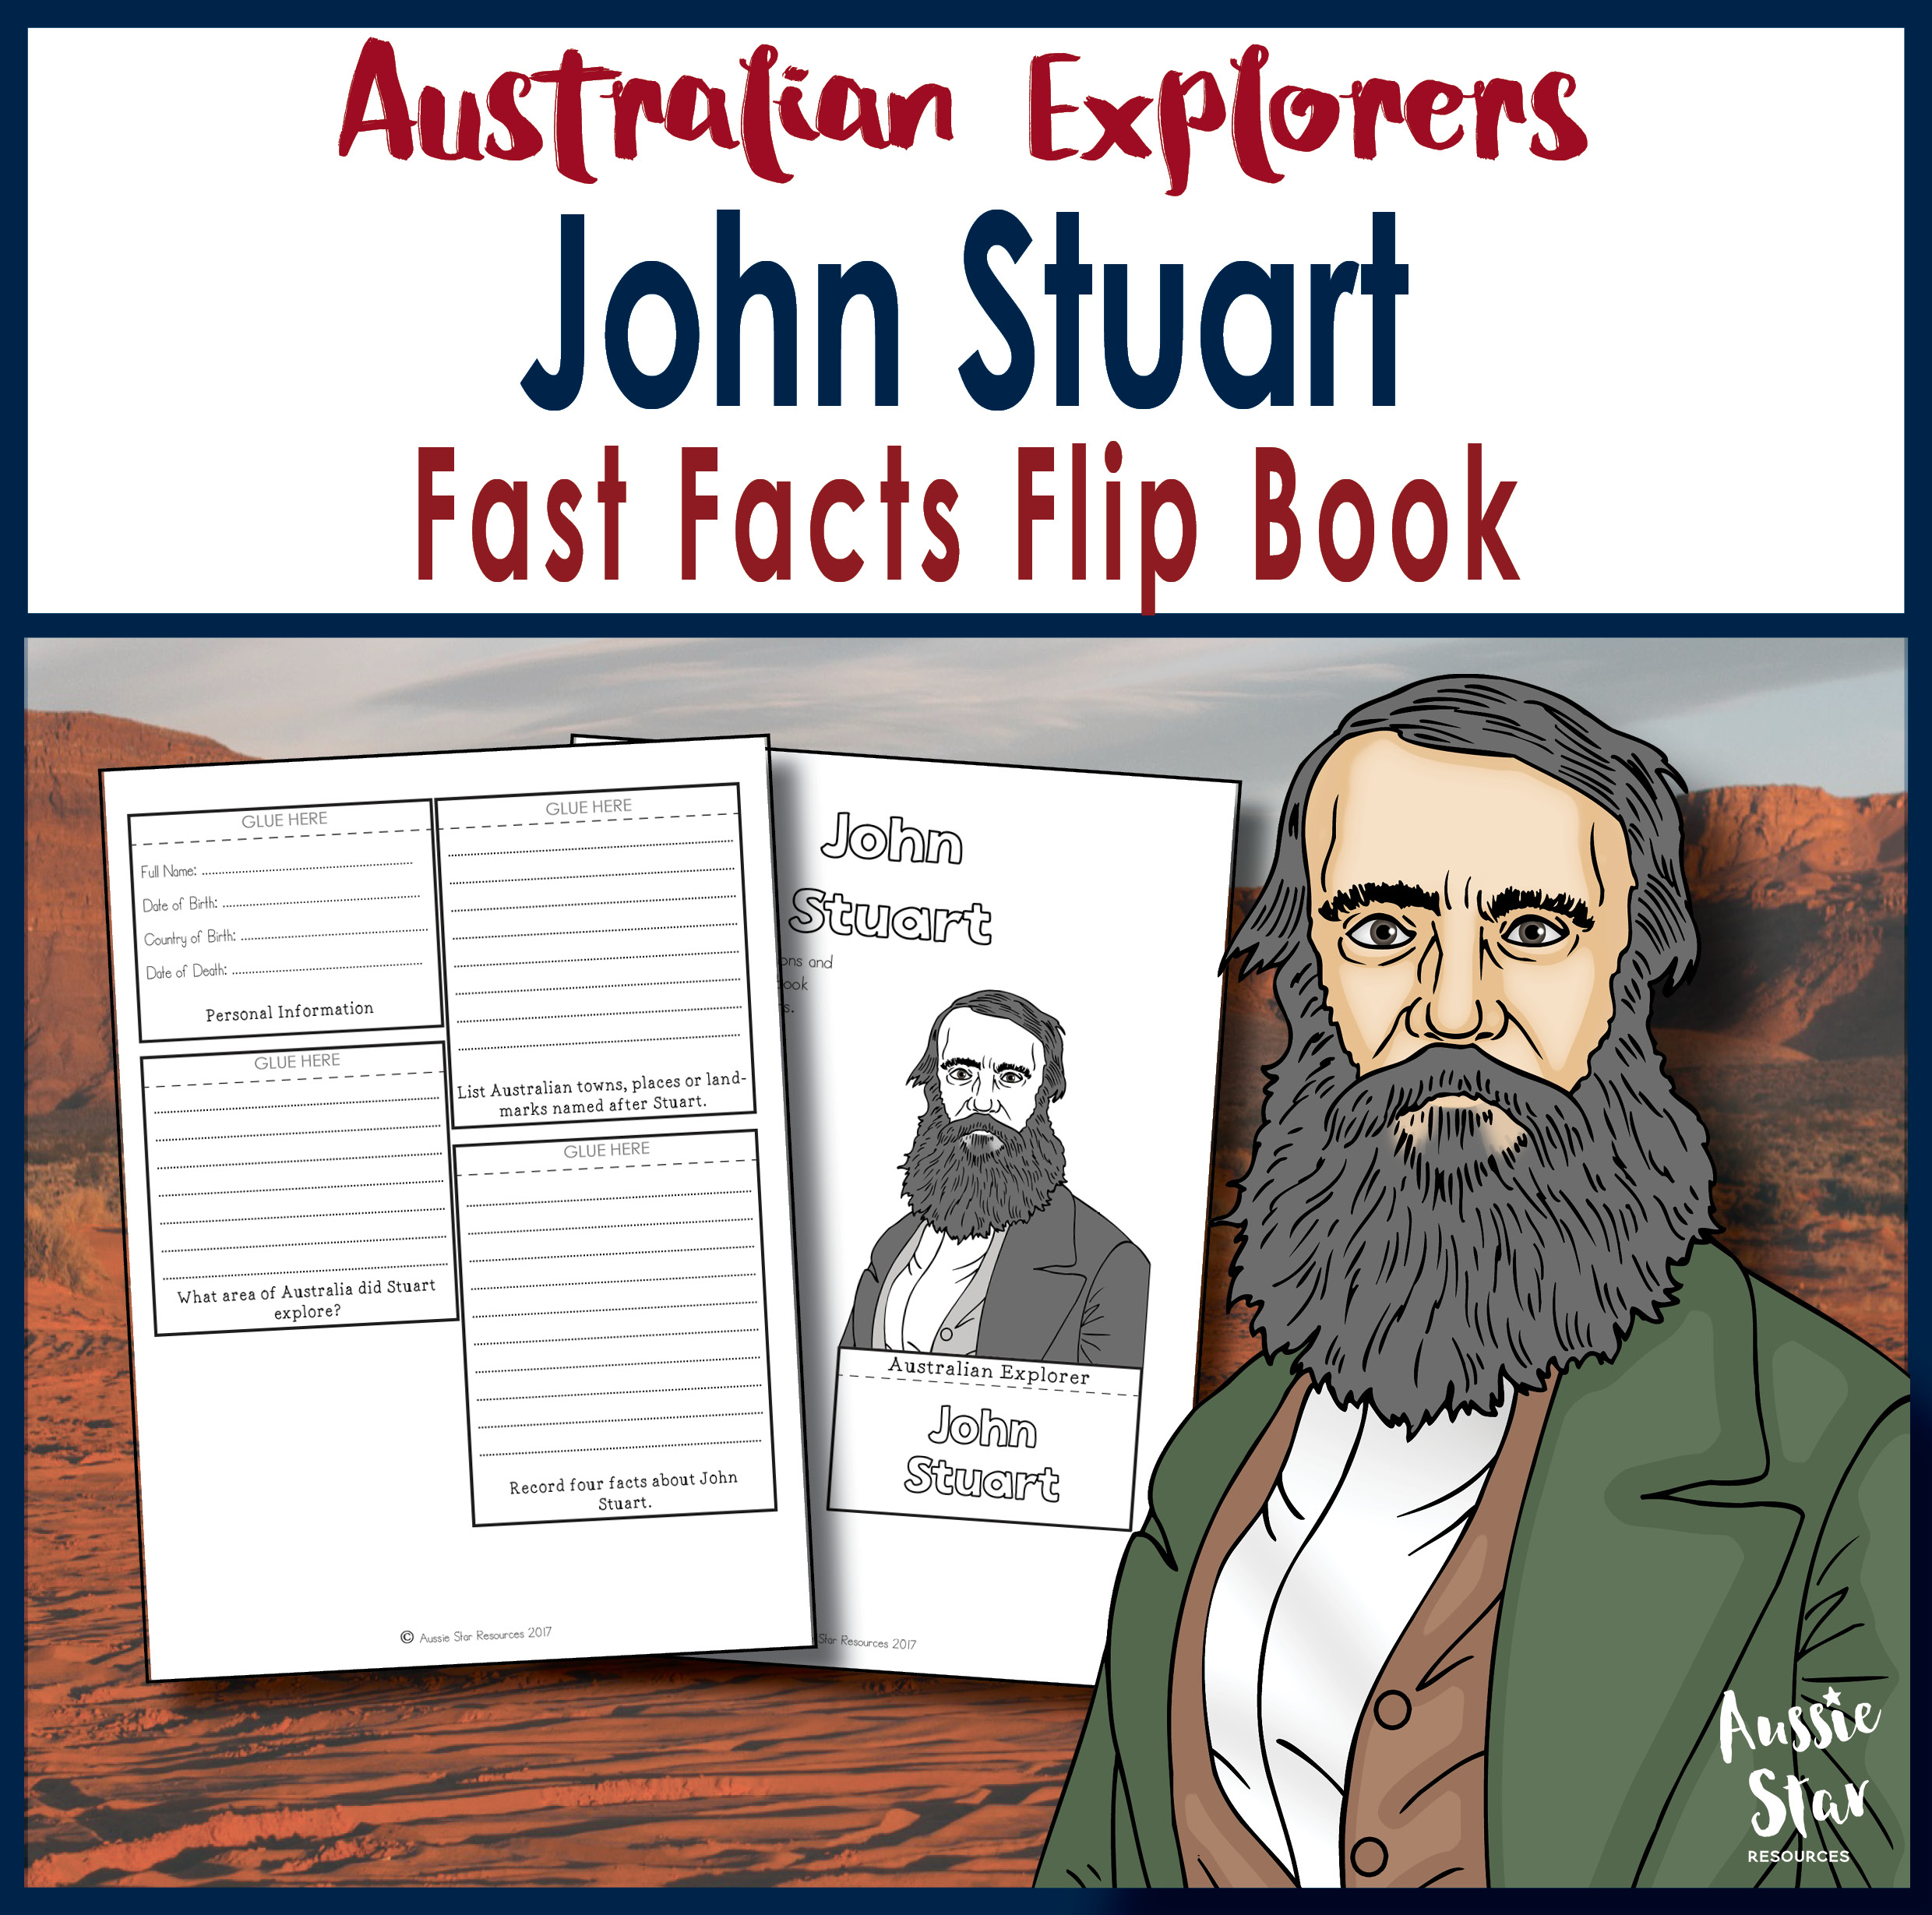 John Stuart fast facts flip book